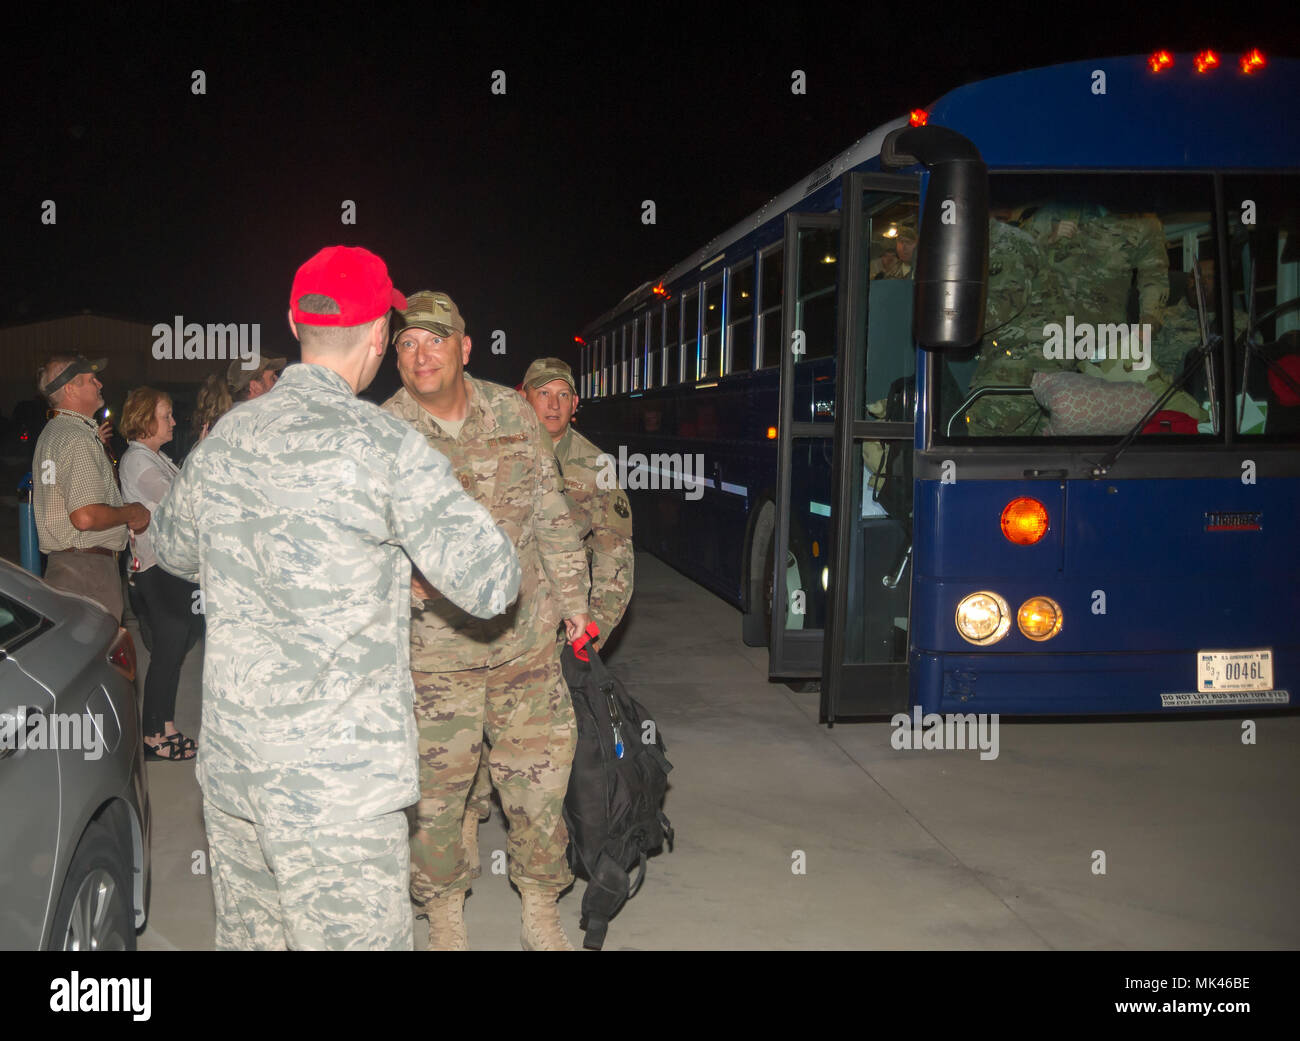 Page 3 Airfield Operations Commander High Resolution Stock Photography And Images Alamy